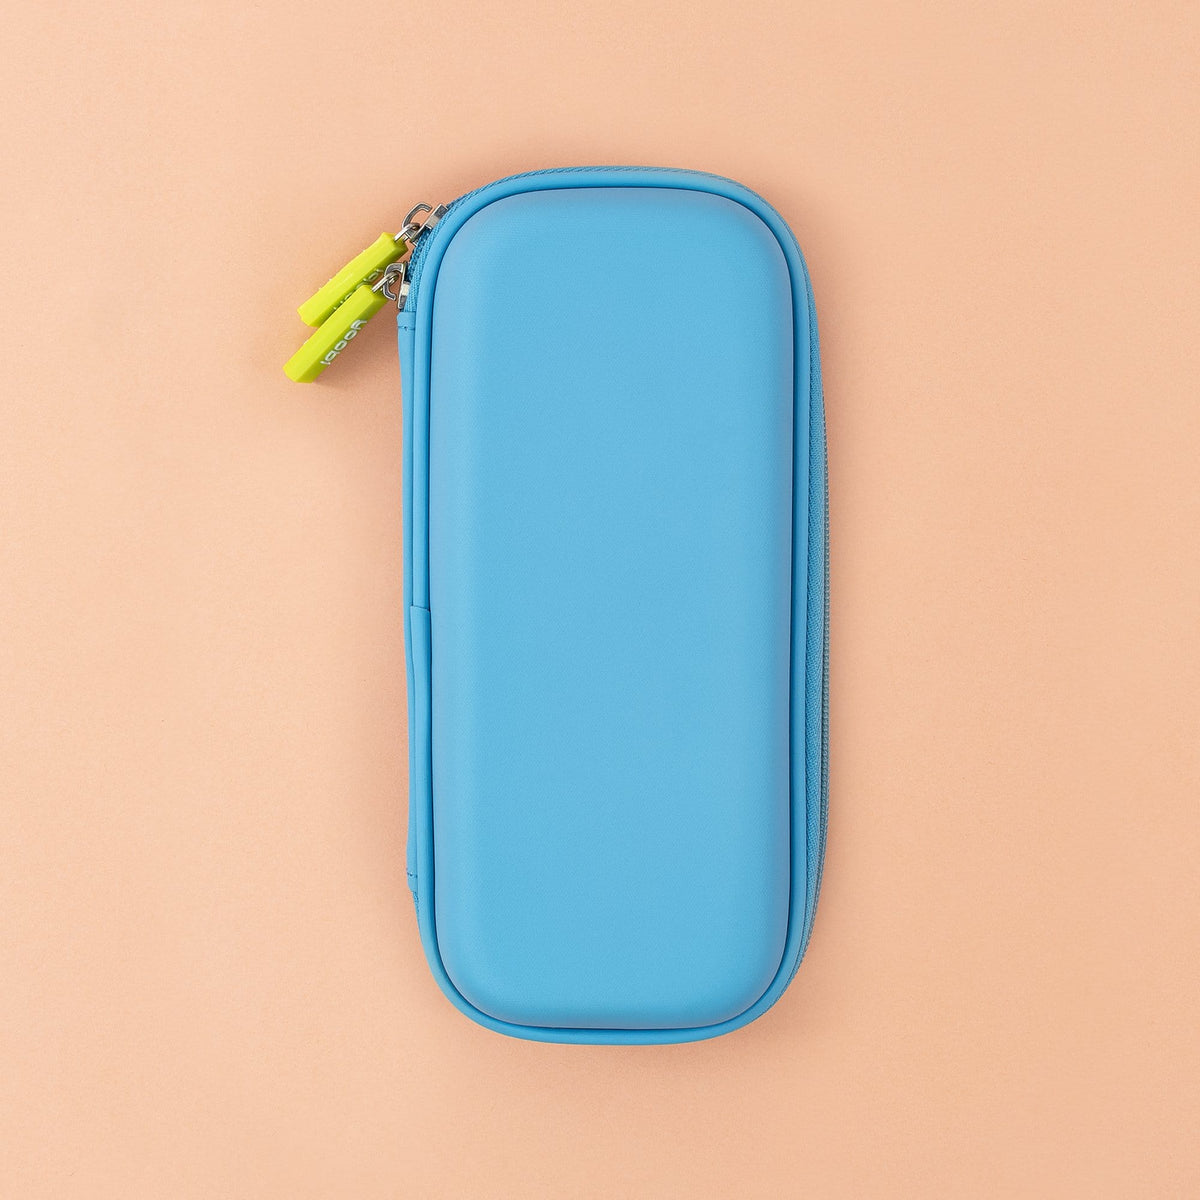 Small Molded Pencil Case - Blue